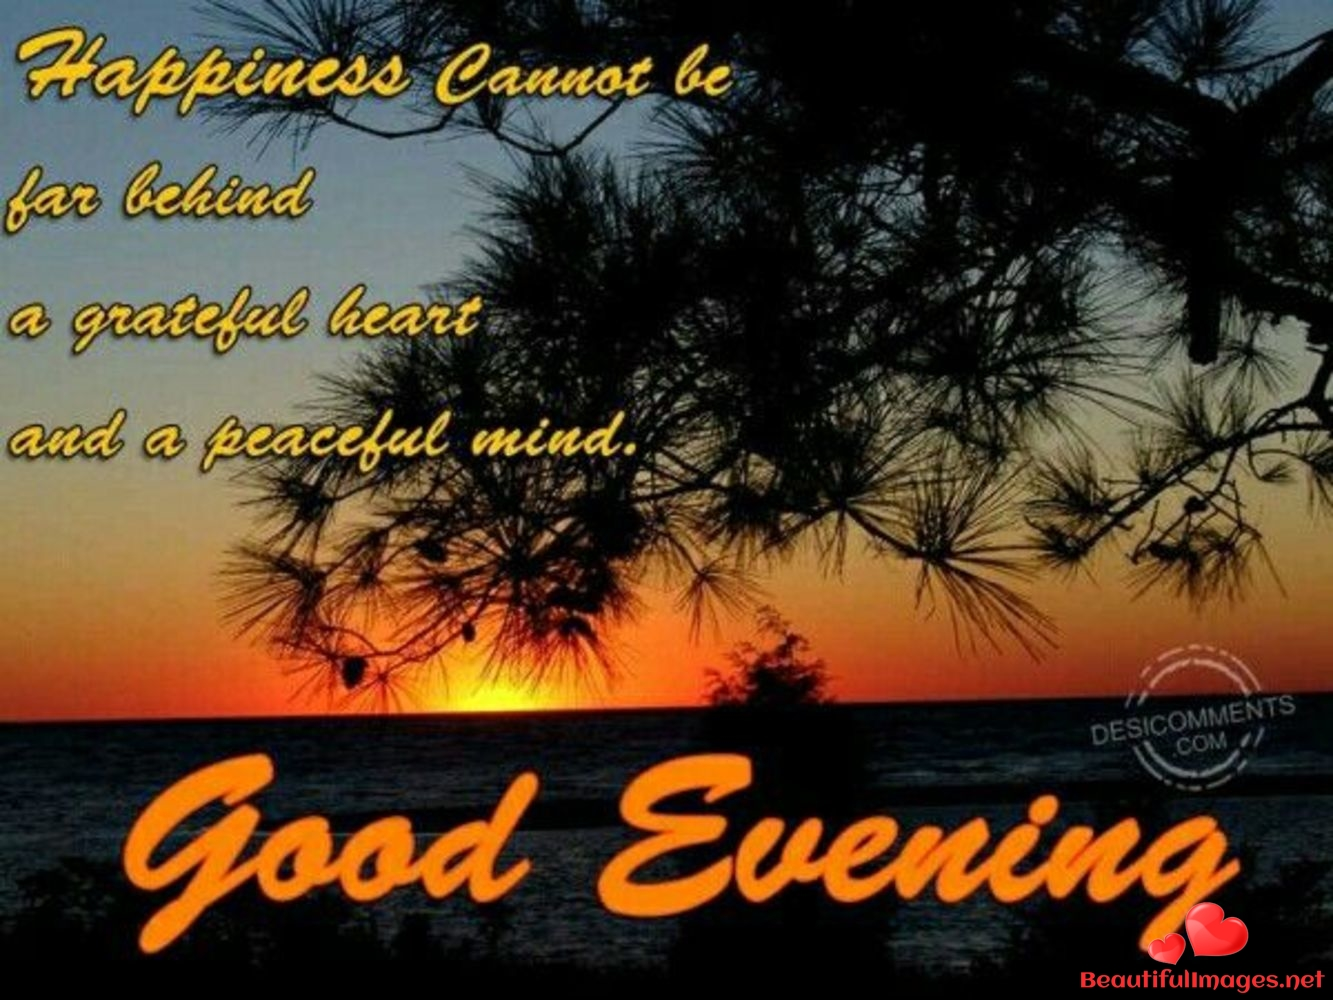 Images-Good-Evening-Nice-Pictures-18